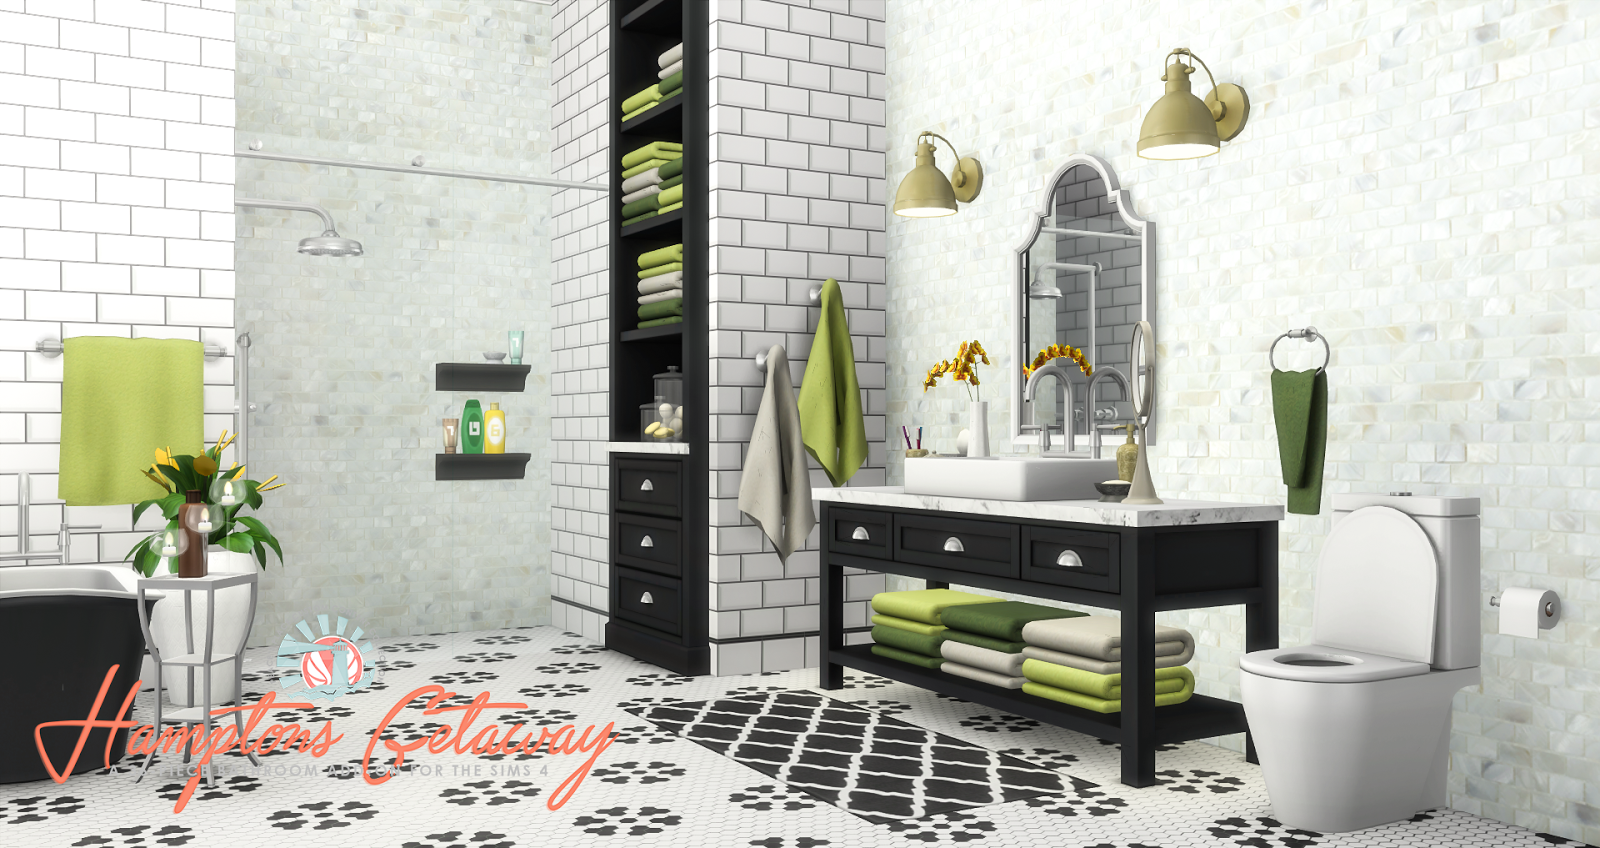 Well My First Foray Into Bathroom Sets Serenity Was A Huge Learning Curve I Said To Myself Would Not Make Another But Fooled